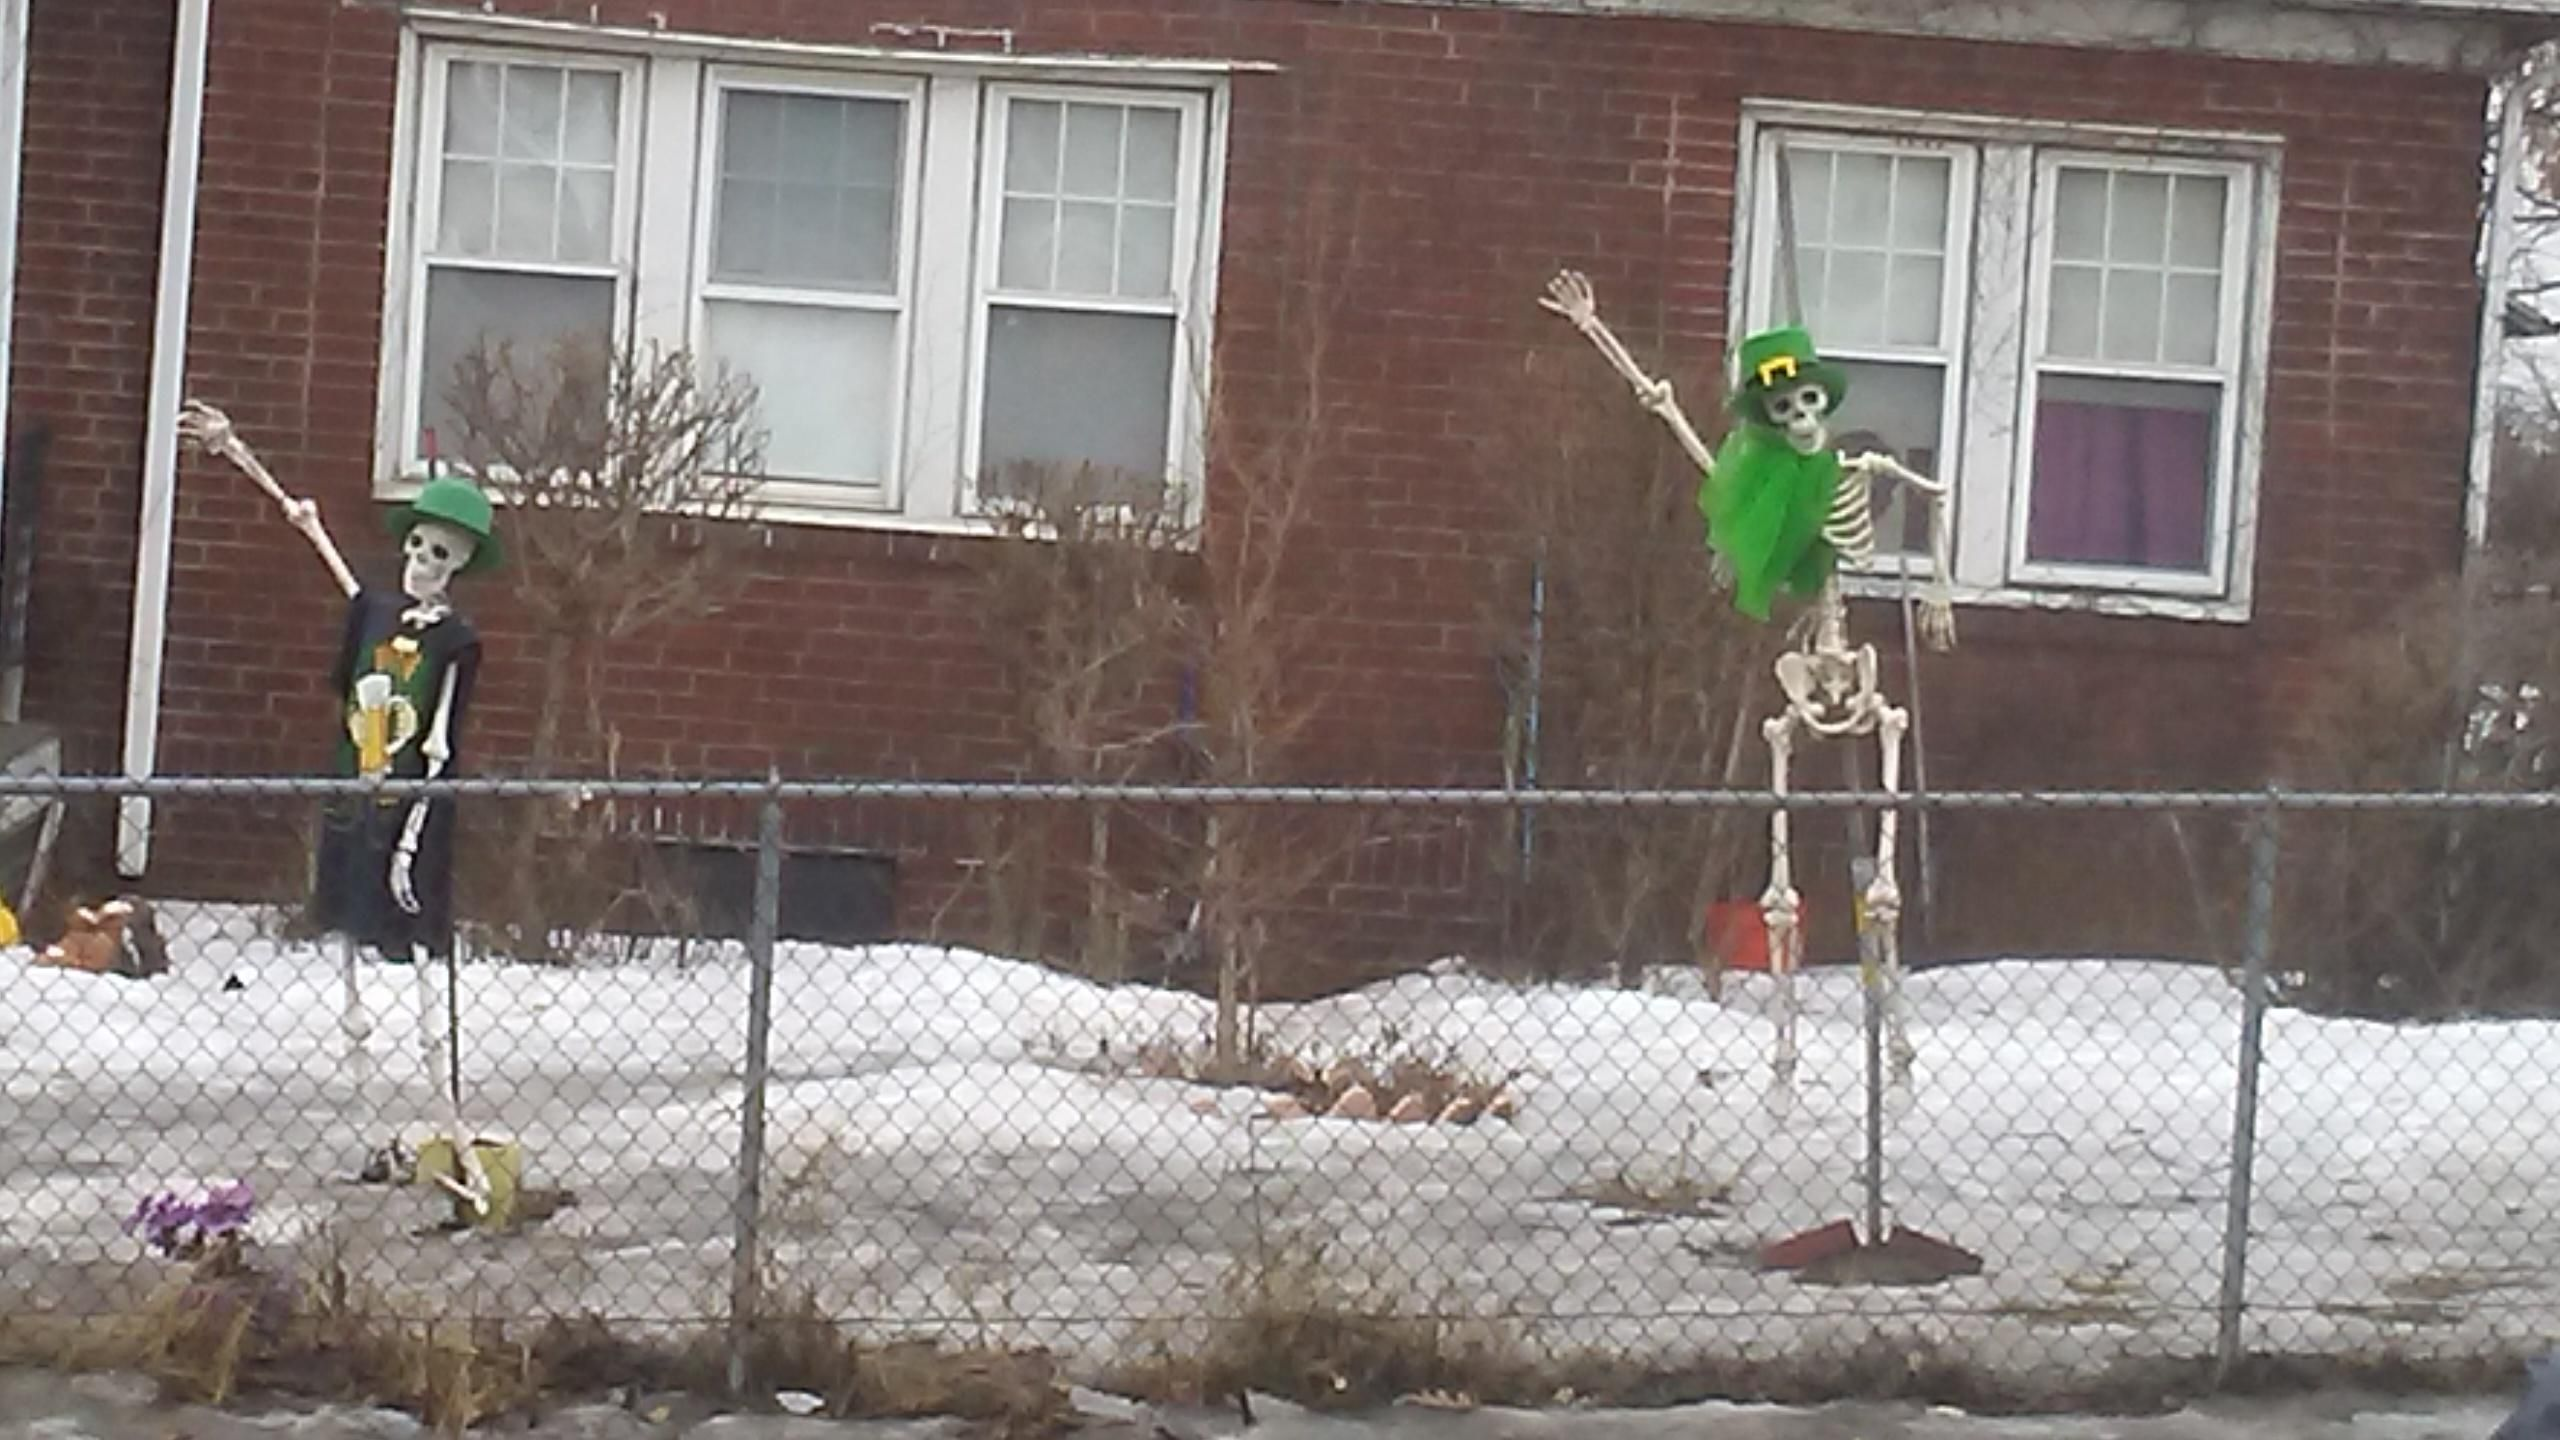 I'm not even mad at these people that never took down their Halloween decorations. They just dress them up for other holidays.